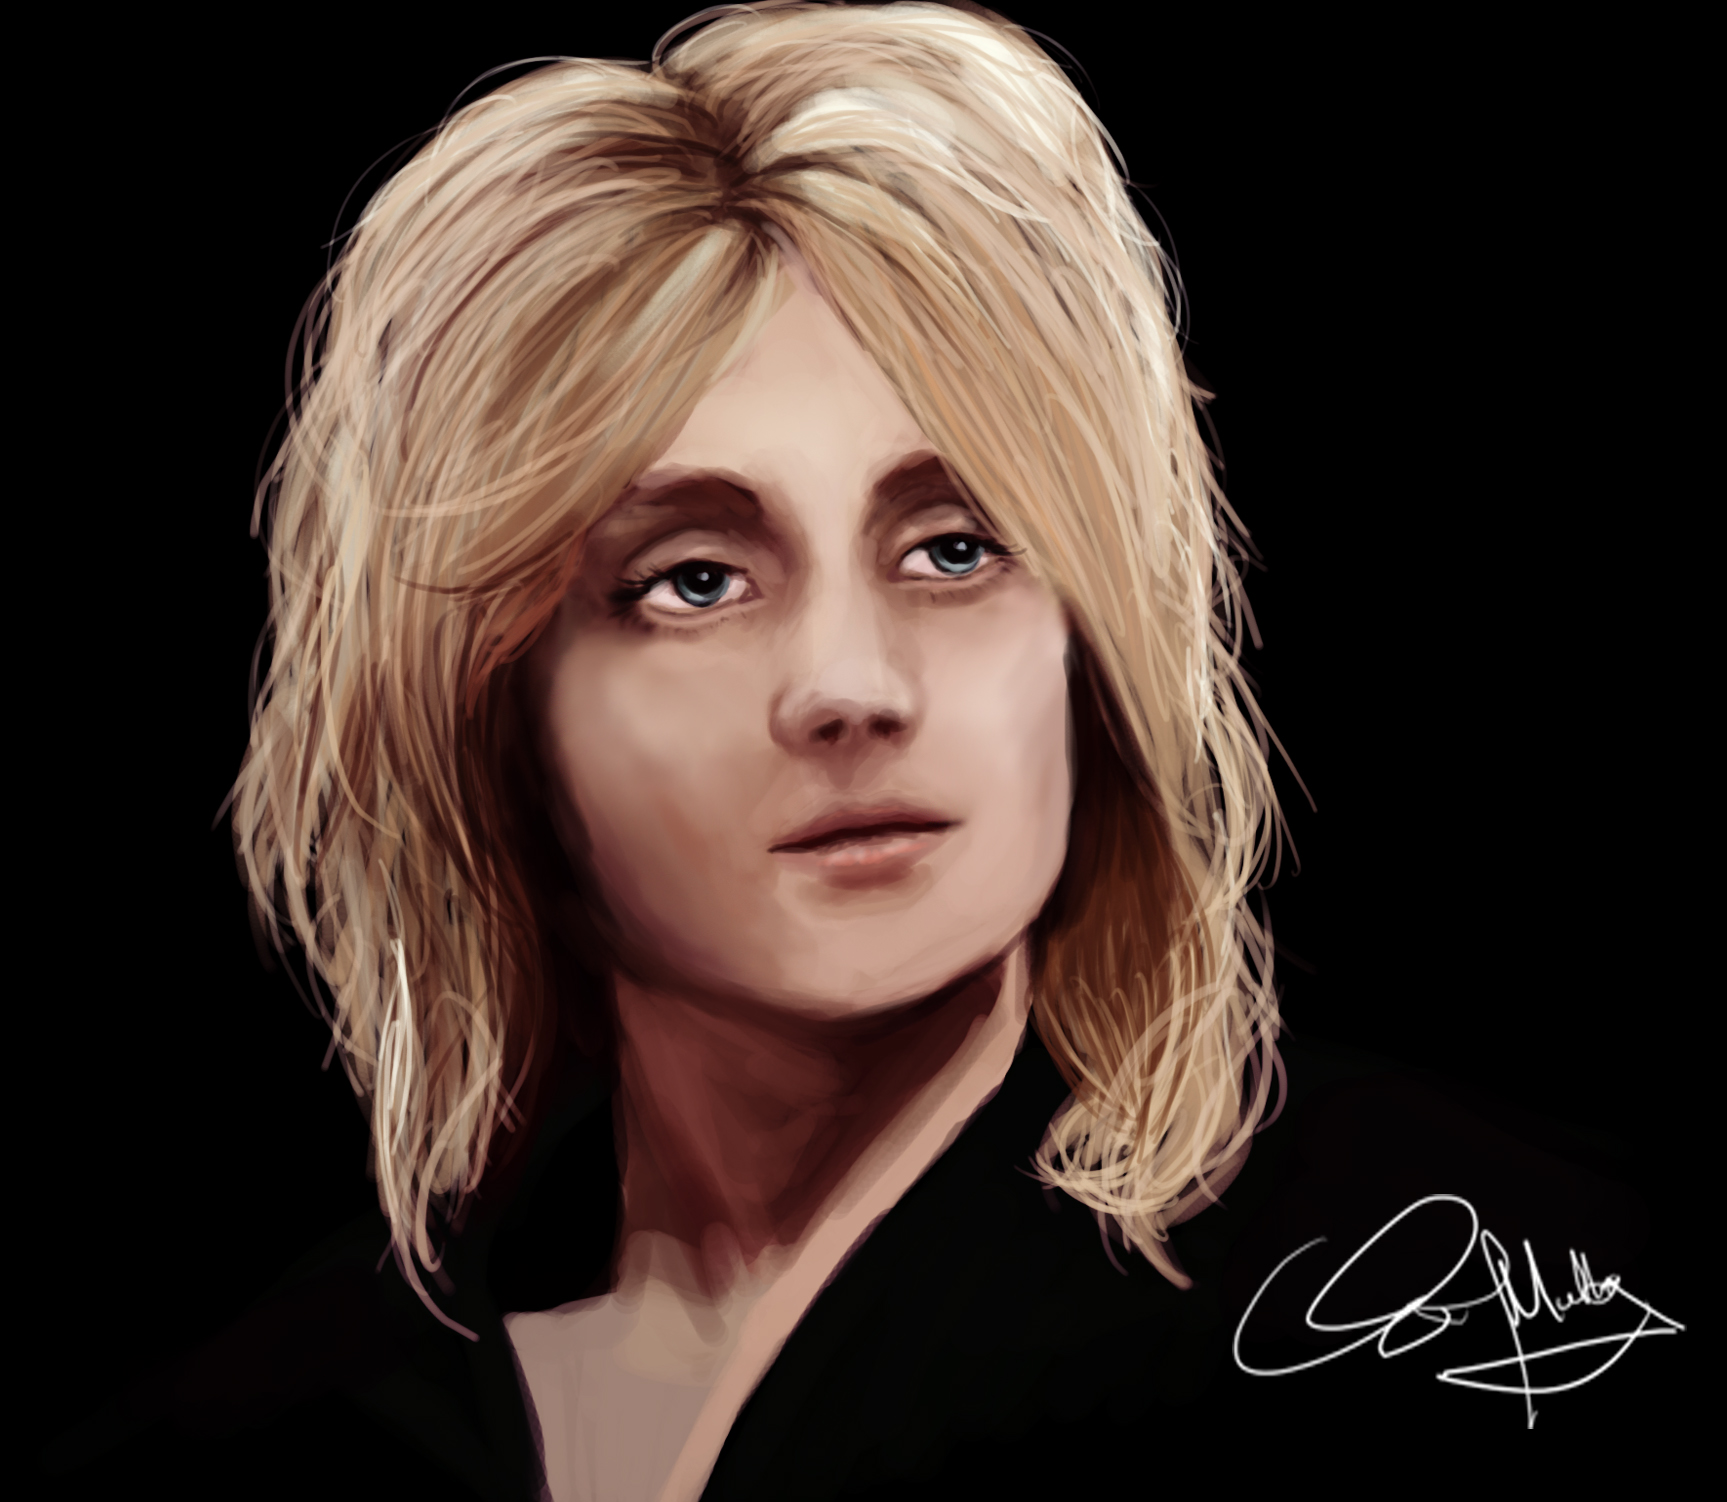 Roger  Taylor Fan Art 32591502 Fanpop